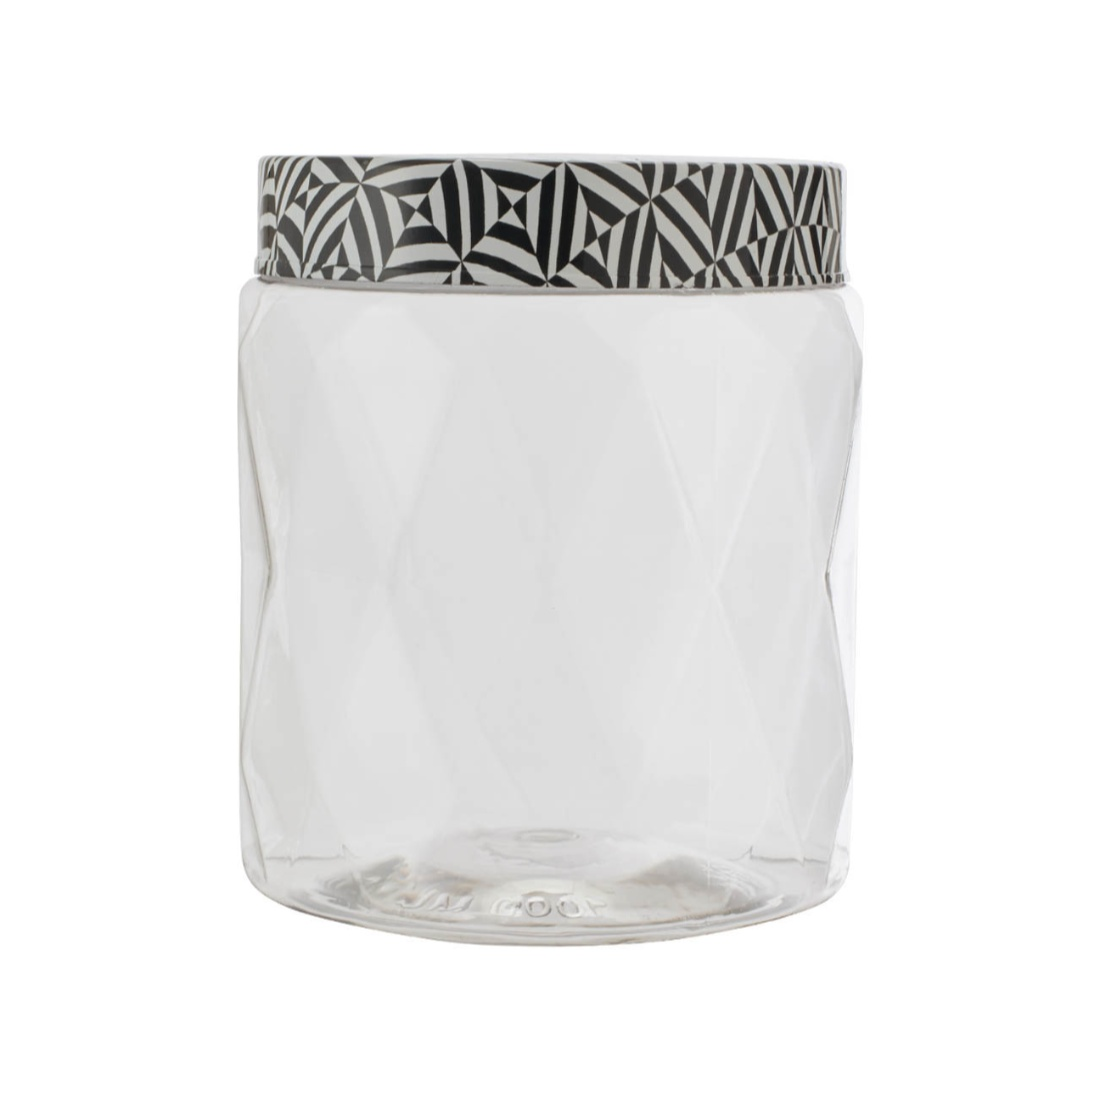 Clark Container 1000 ml Glass Containers in Transparent Container & Black Whitelid Colour by Living Essence